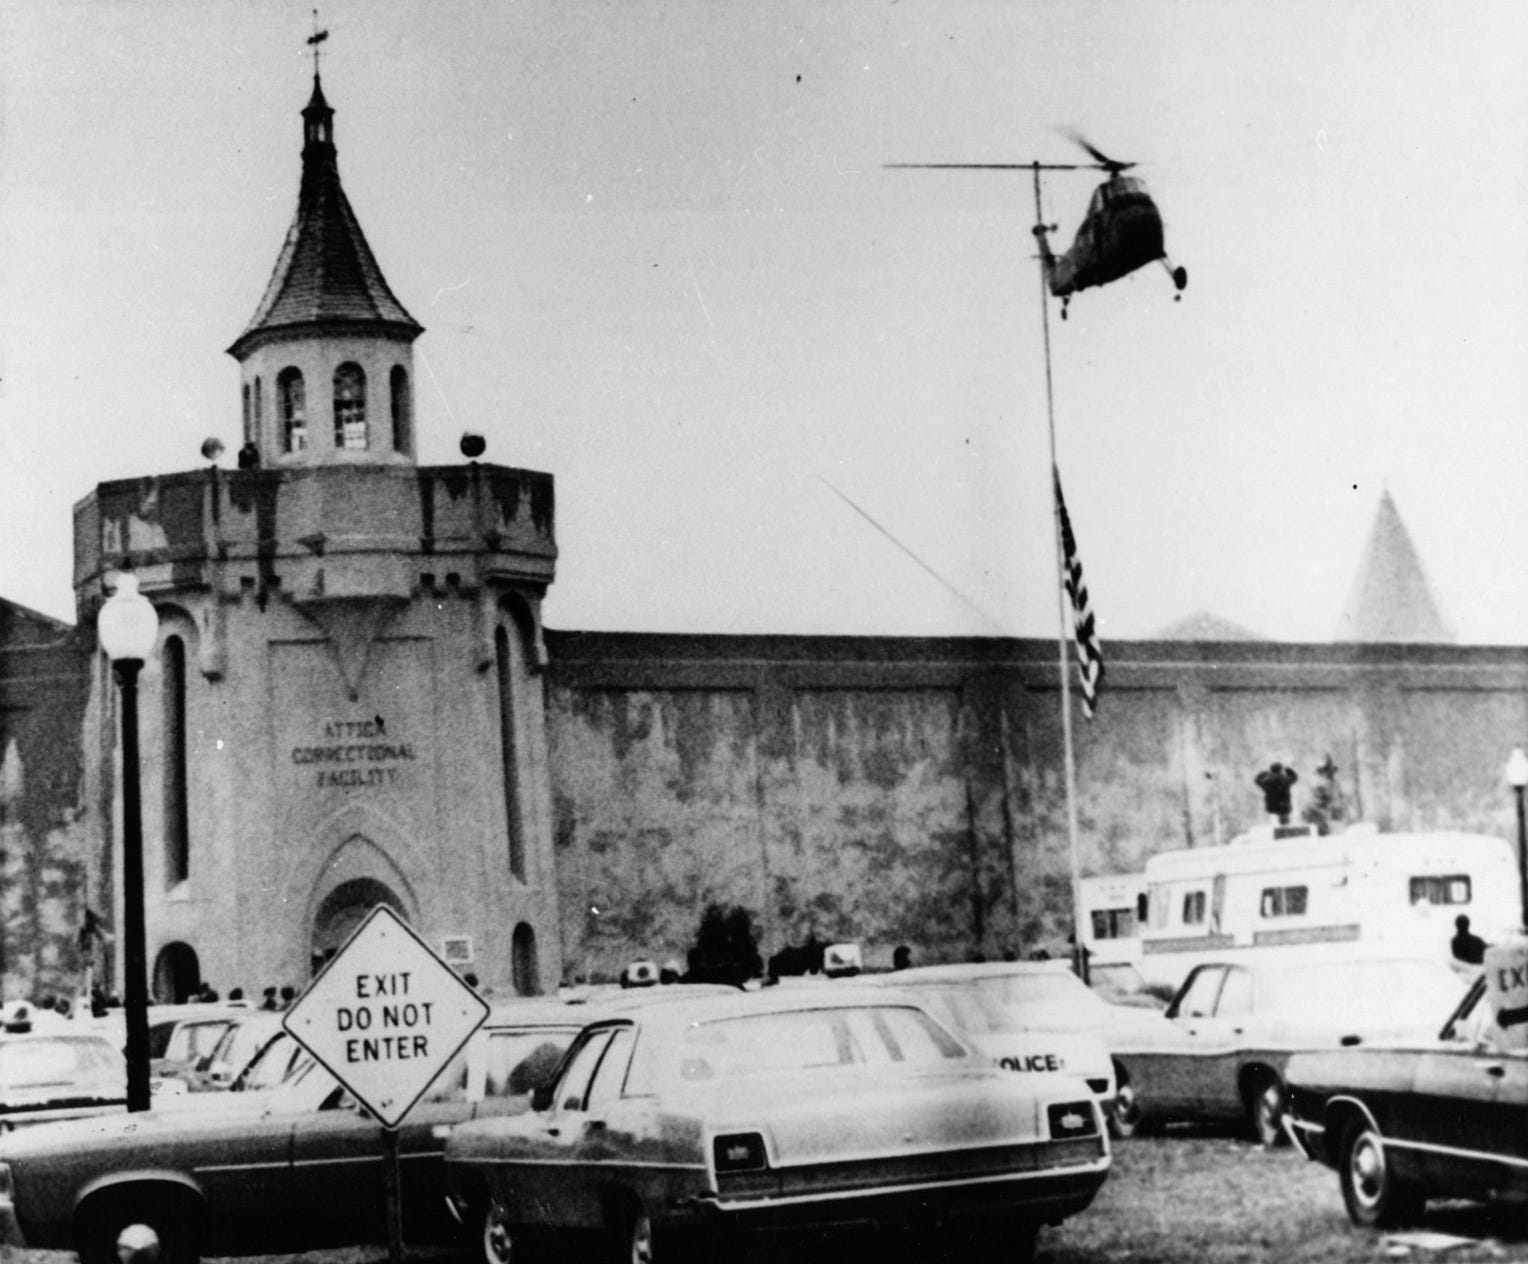 An Army helicopter makes a low pass over the Attica Correctional Facility on Sept. 13, 1971. Troops fired tear gas shells into the prison's D Yard, where inmates held 38 hostages.